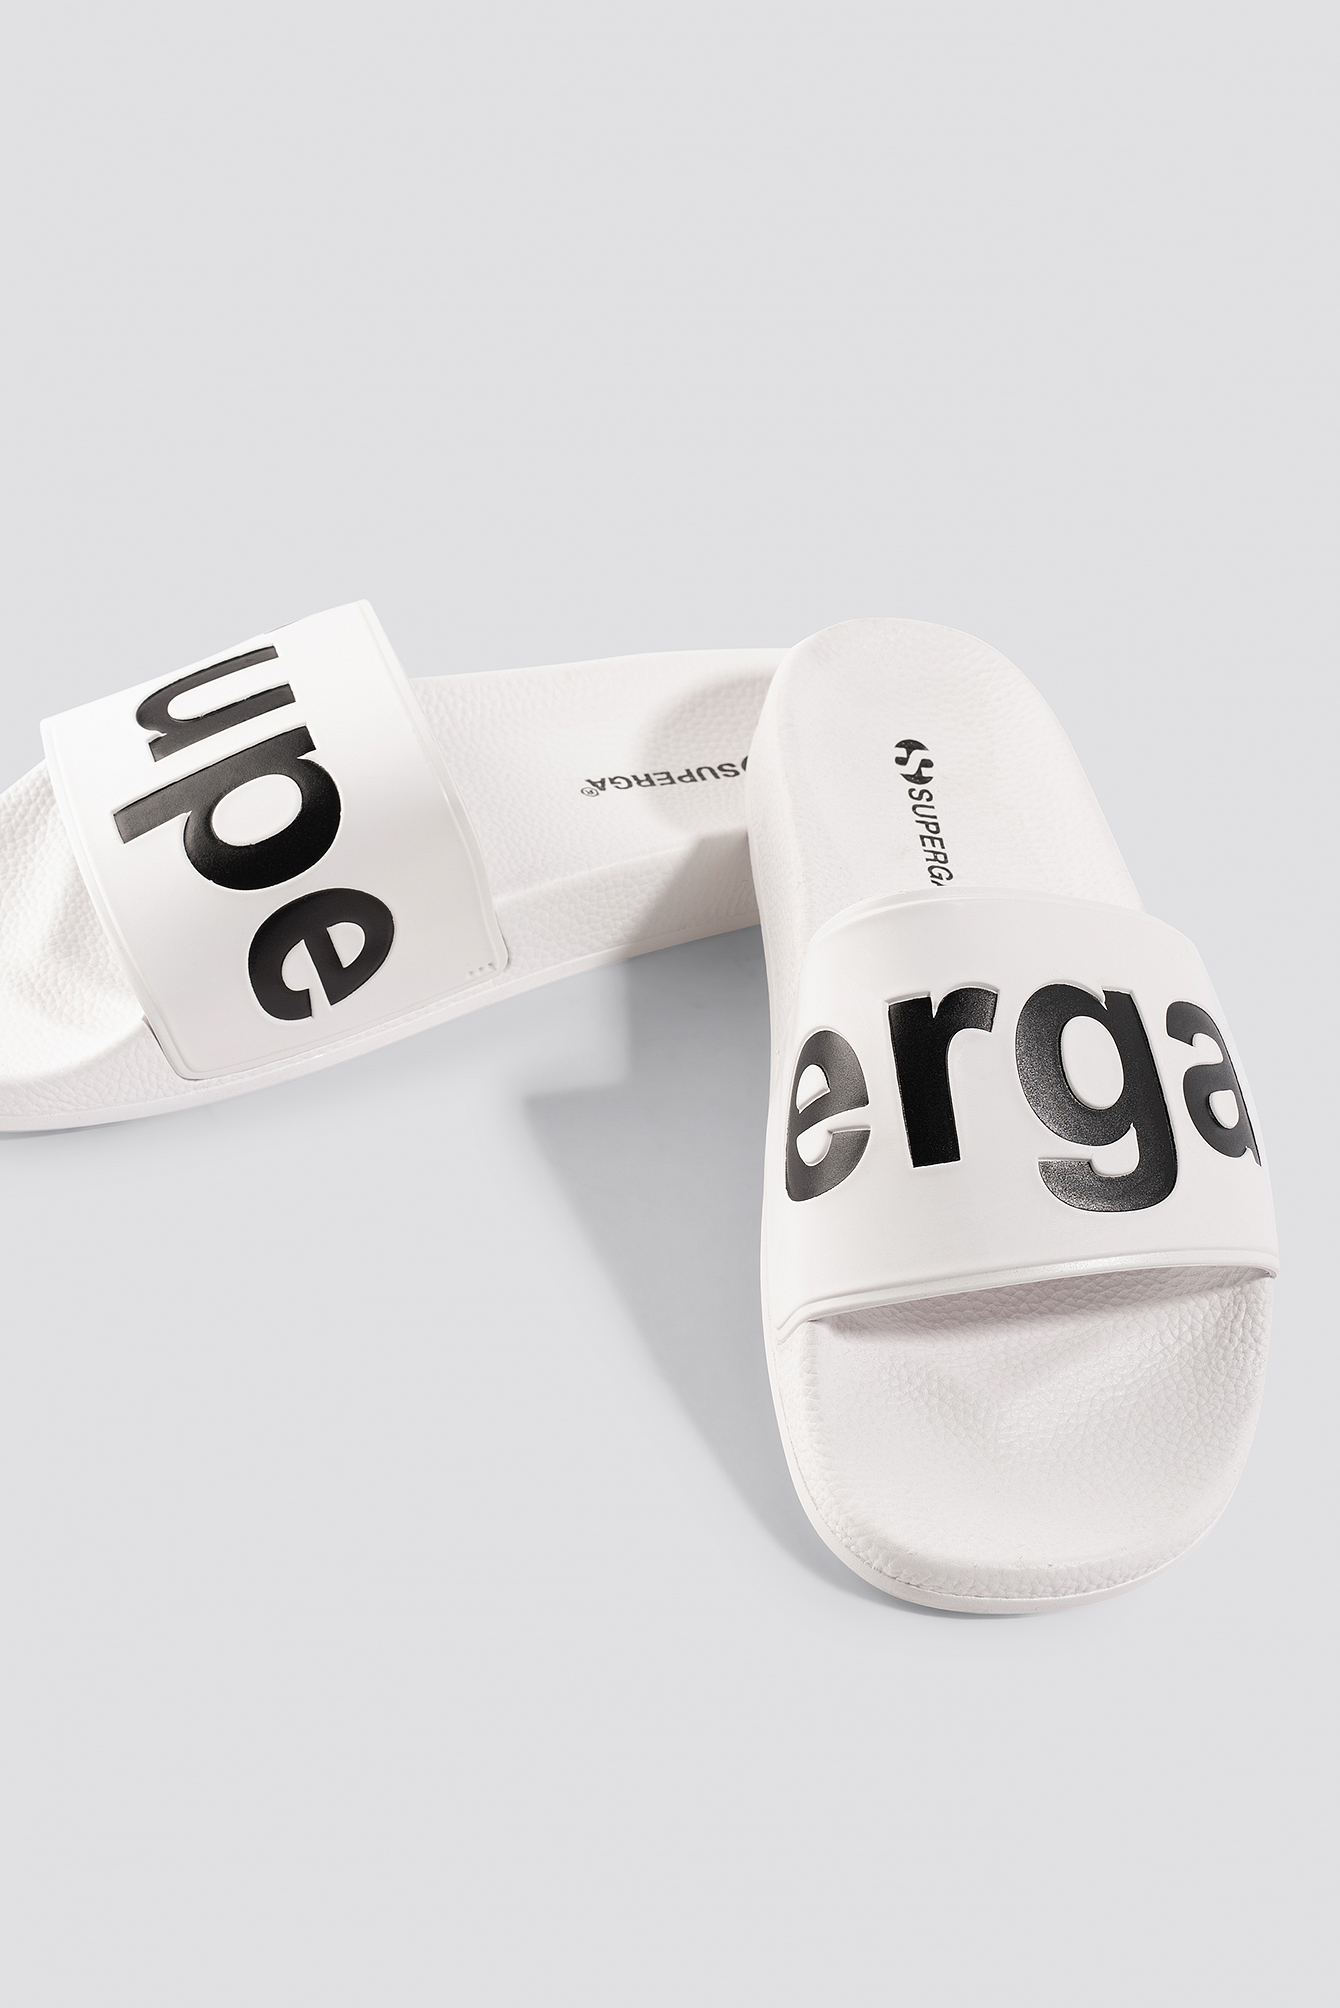 superga -  Puu 1908 Slipper - White